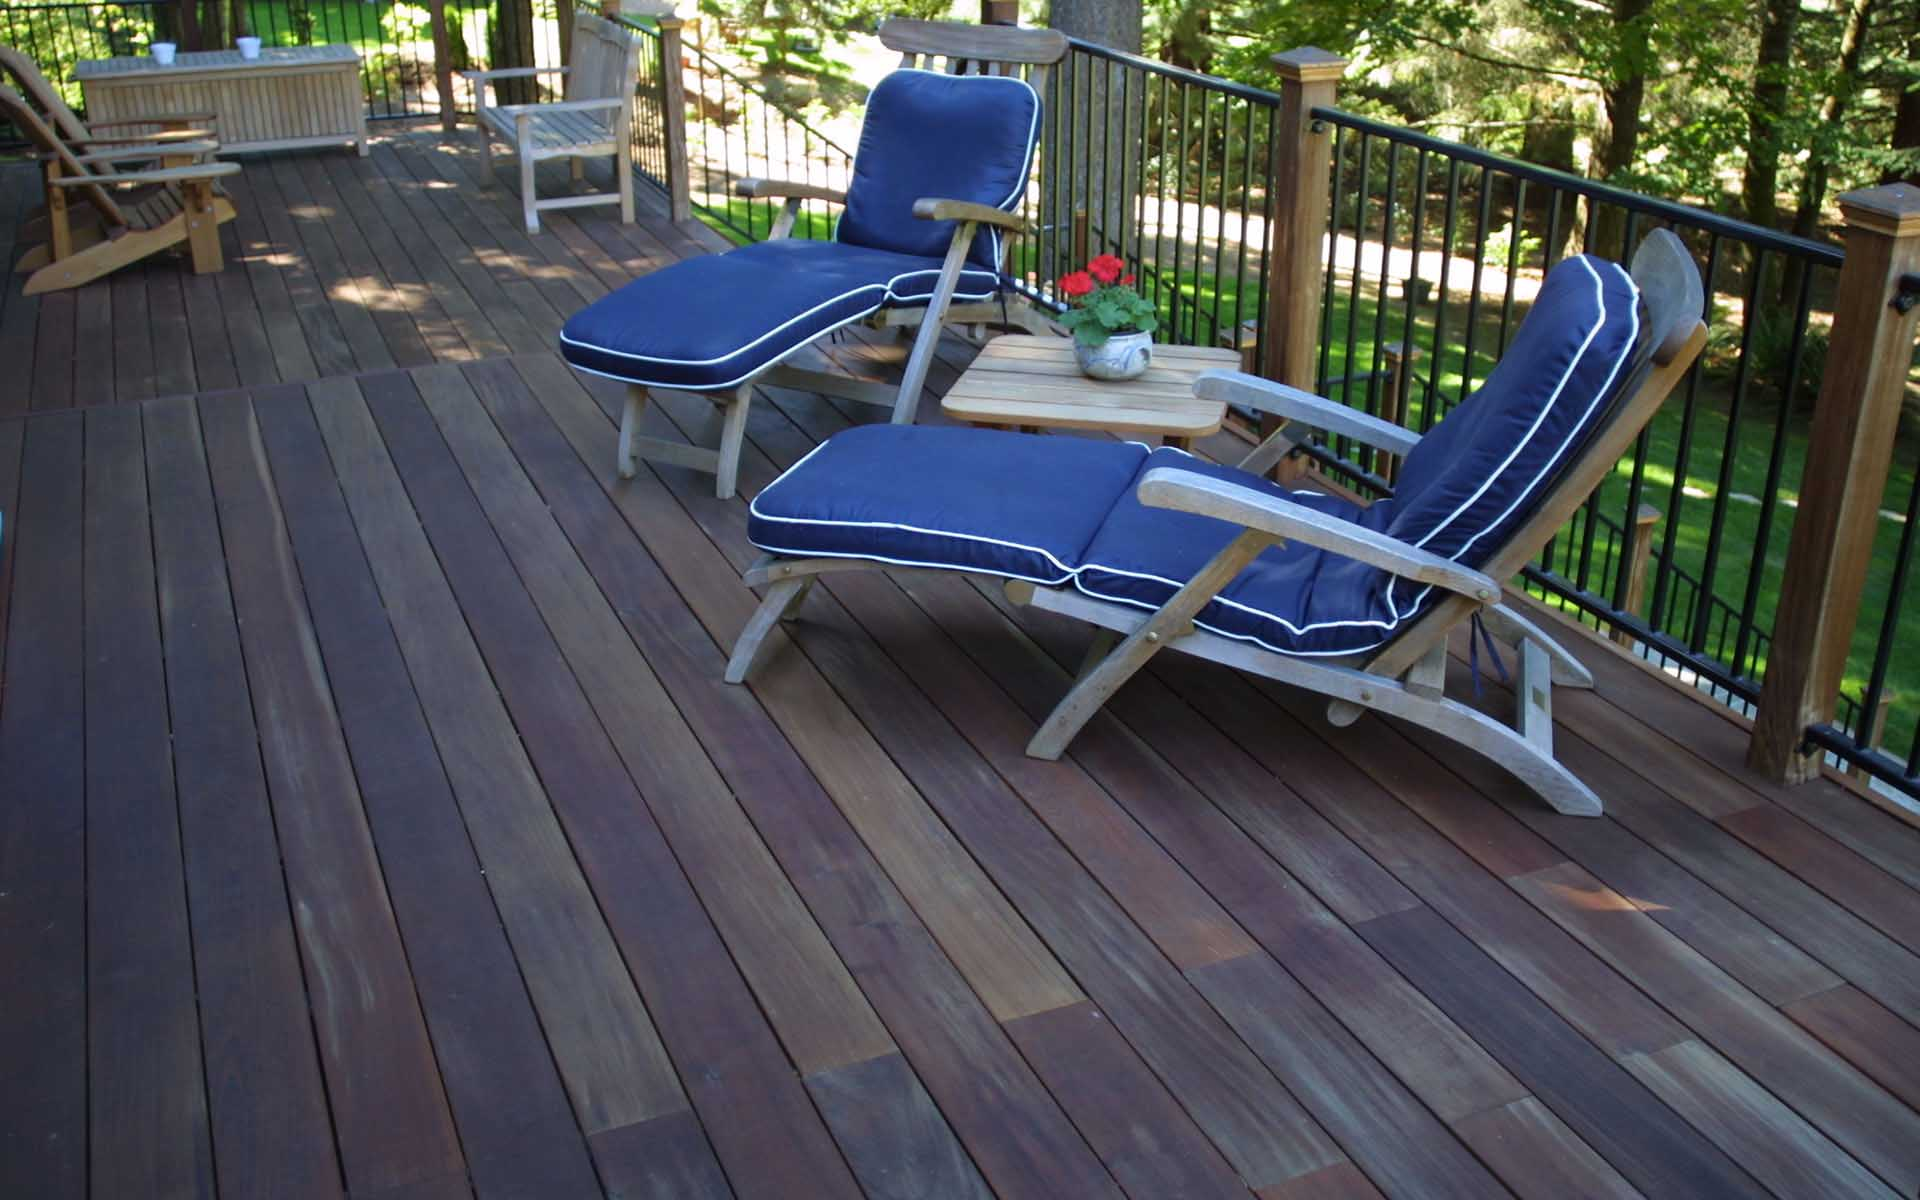 Ipe Decking with Chaise Loungers in the Shade.jpg